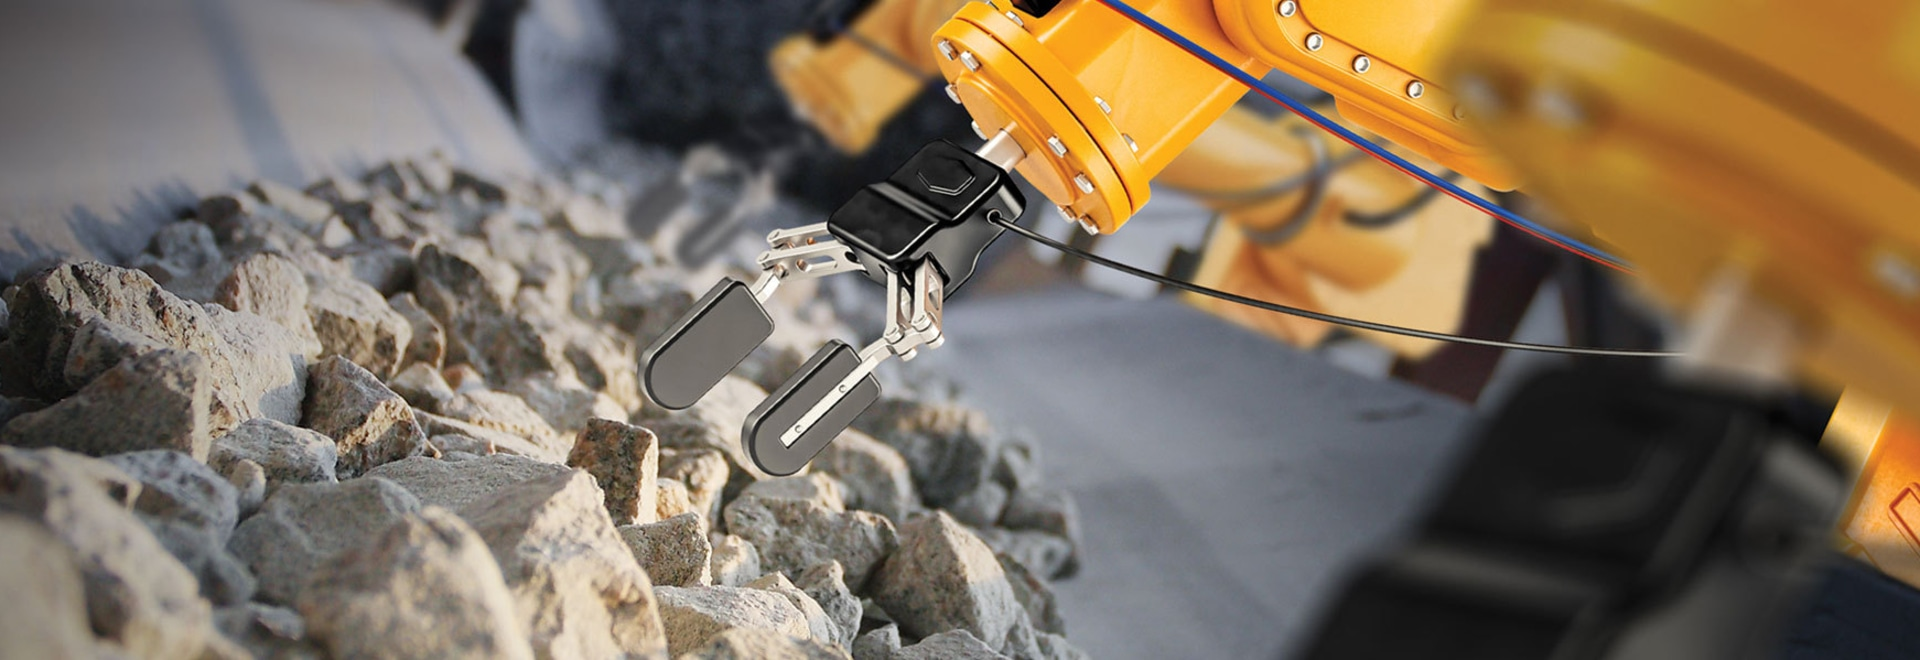 Digging Deeper into Cash Cost Reduction – Automated & Real-Time Solutions for Process Monitoring in Mining, Metals & Cement